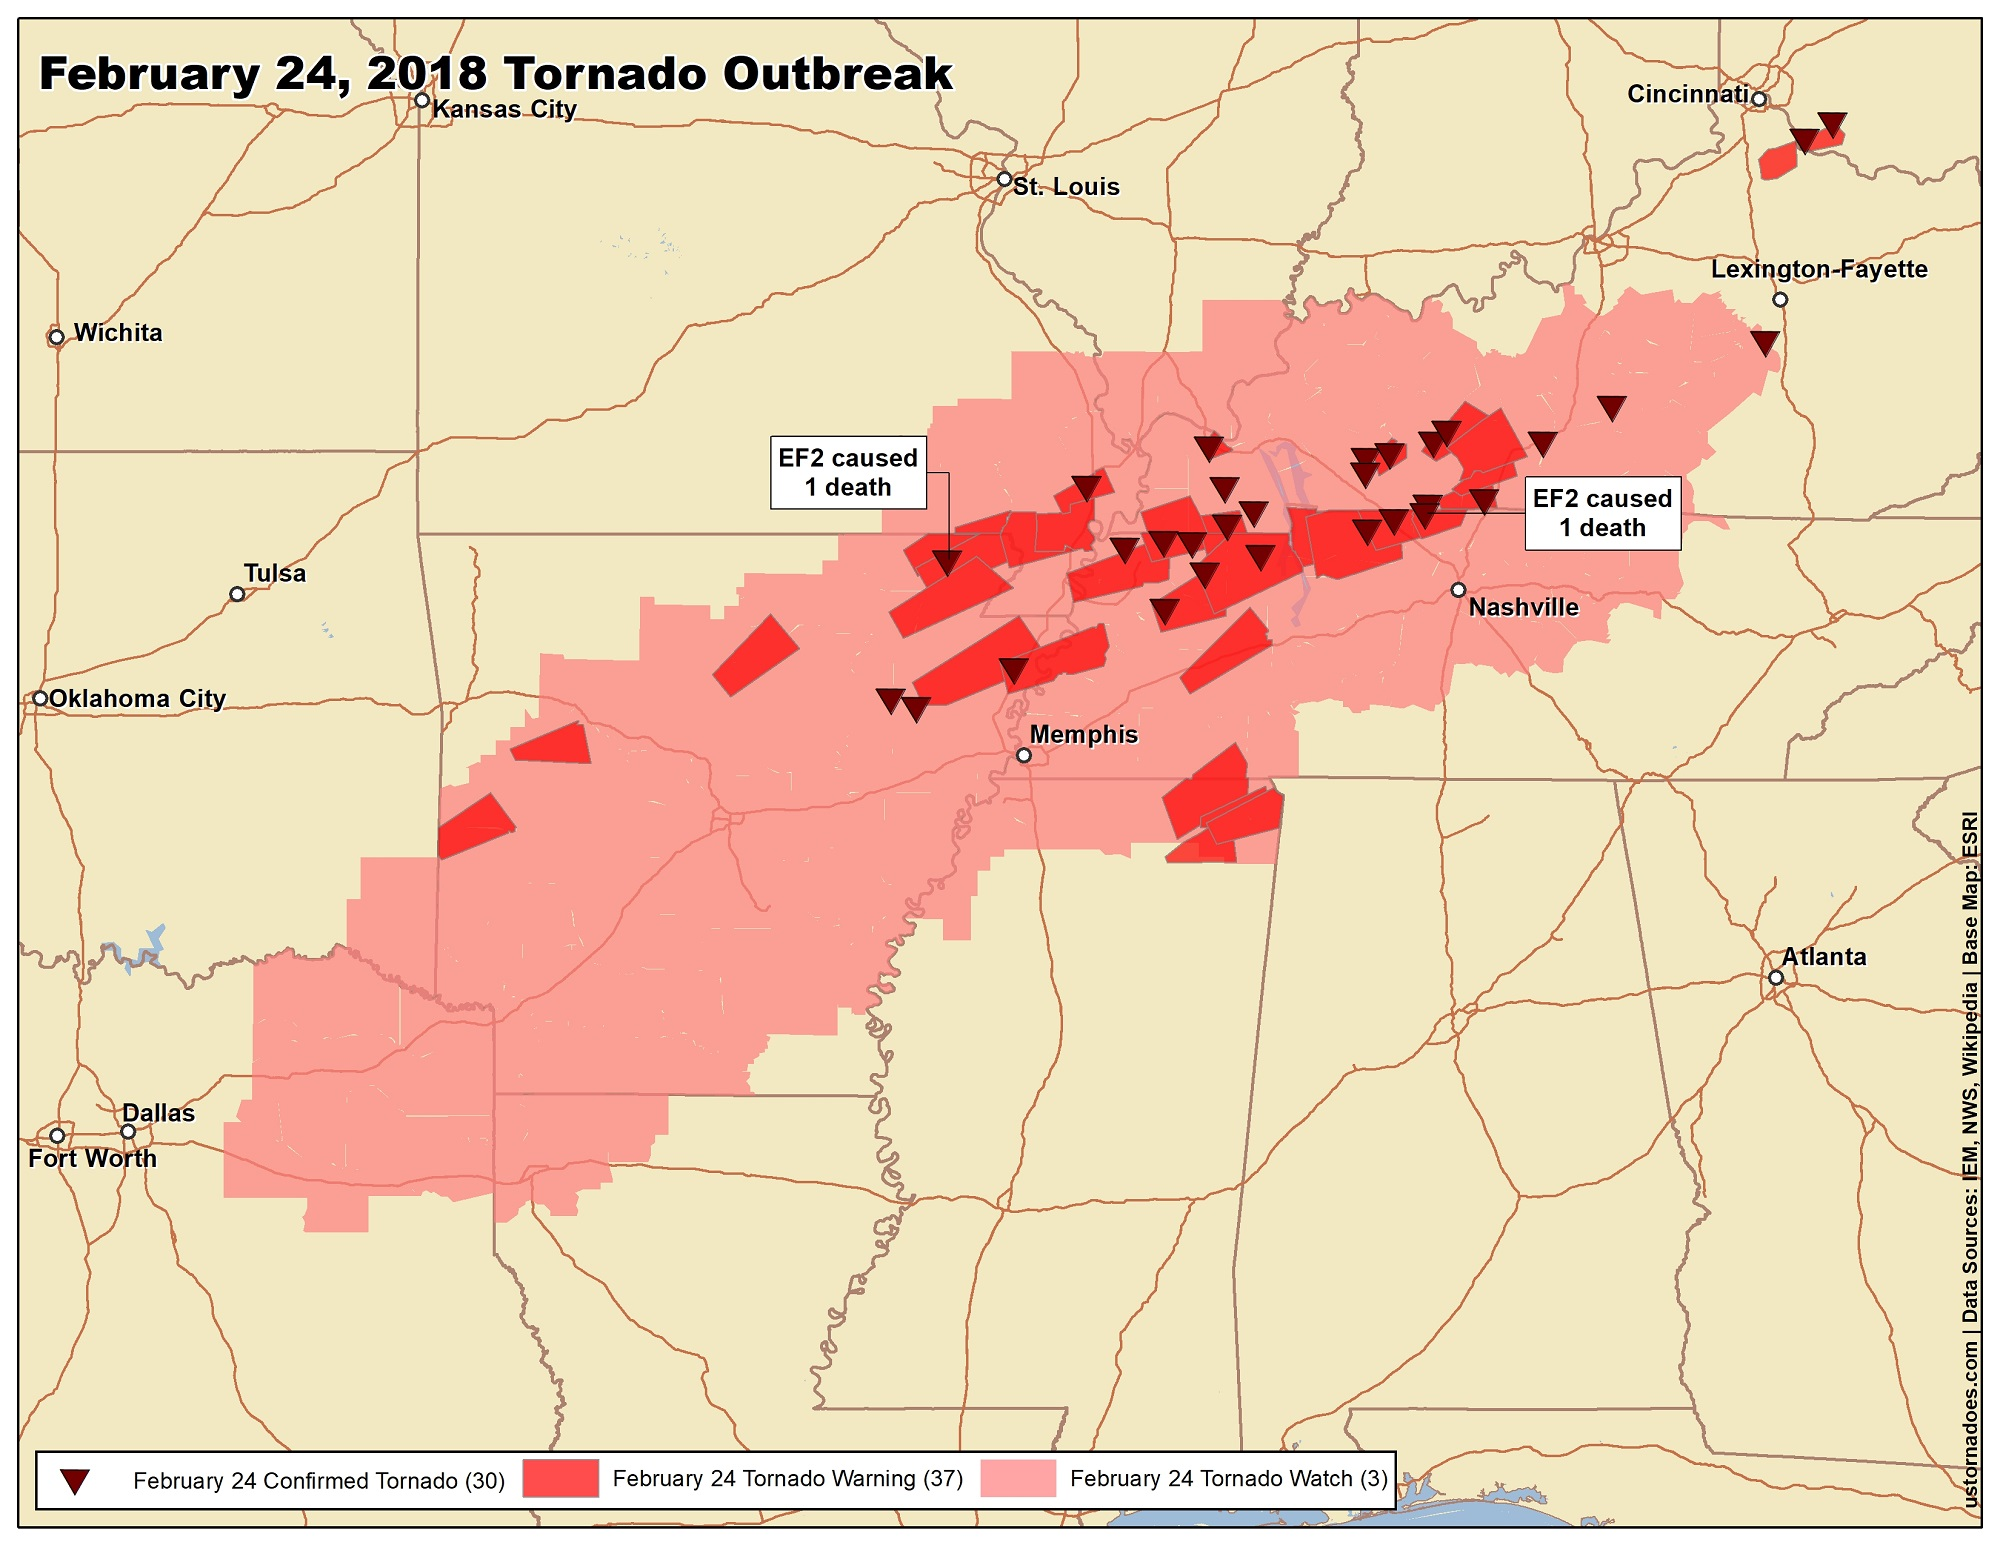 The biggest tornado events of 2018 - U.S. Tornadoes on kansas snowfall map, kansas snow map, kansas county map, kansas territory map, wichita kansas map, kansas historical maps, razorback map, kansas water map, kansas wildlife and nature photography, kansas map with all cities, kansas attractions, kansas precipitation map, sedalia kansas map, kansas topo map, kansas weather, kansas ok map, tornadoes kansas map, kansas wind map, kansas drought map, kansas sinkhole map,